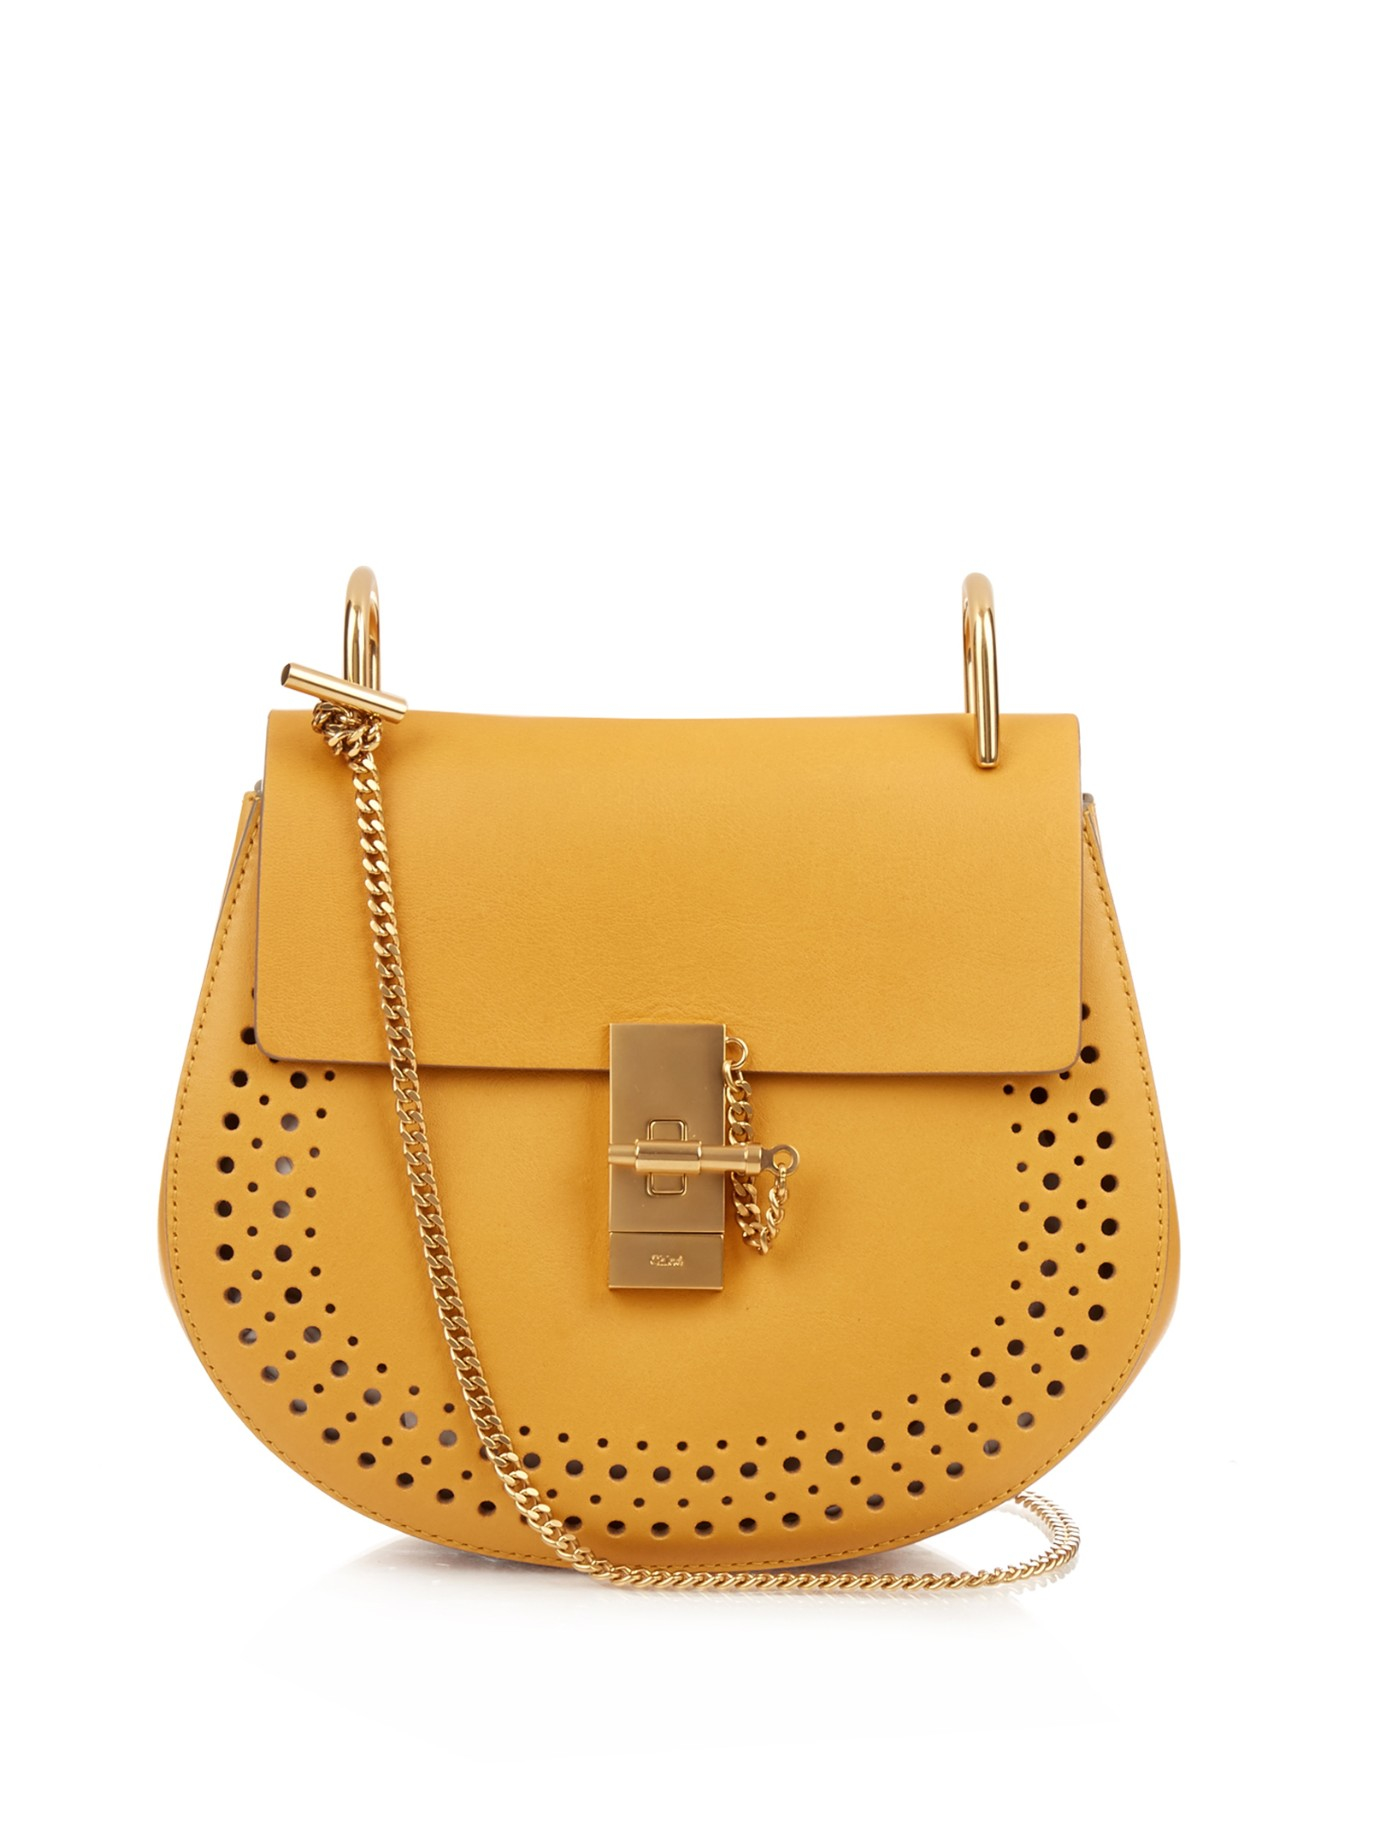 Chlo�� Drew Small Leather Cross-Body Bag in Yellow | Lyst